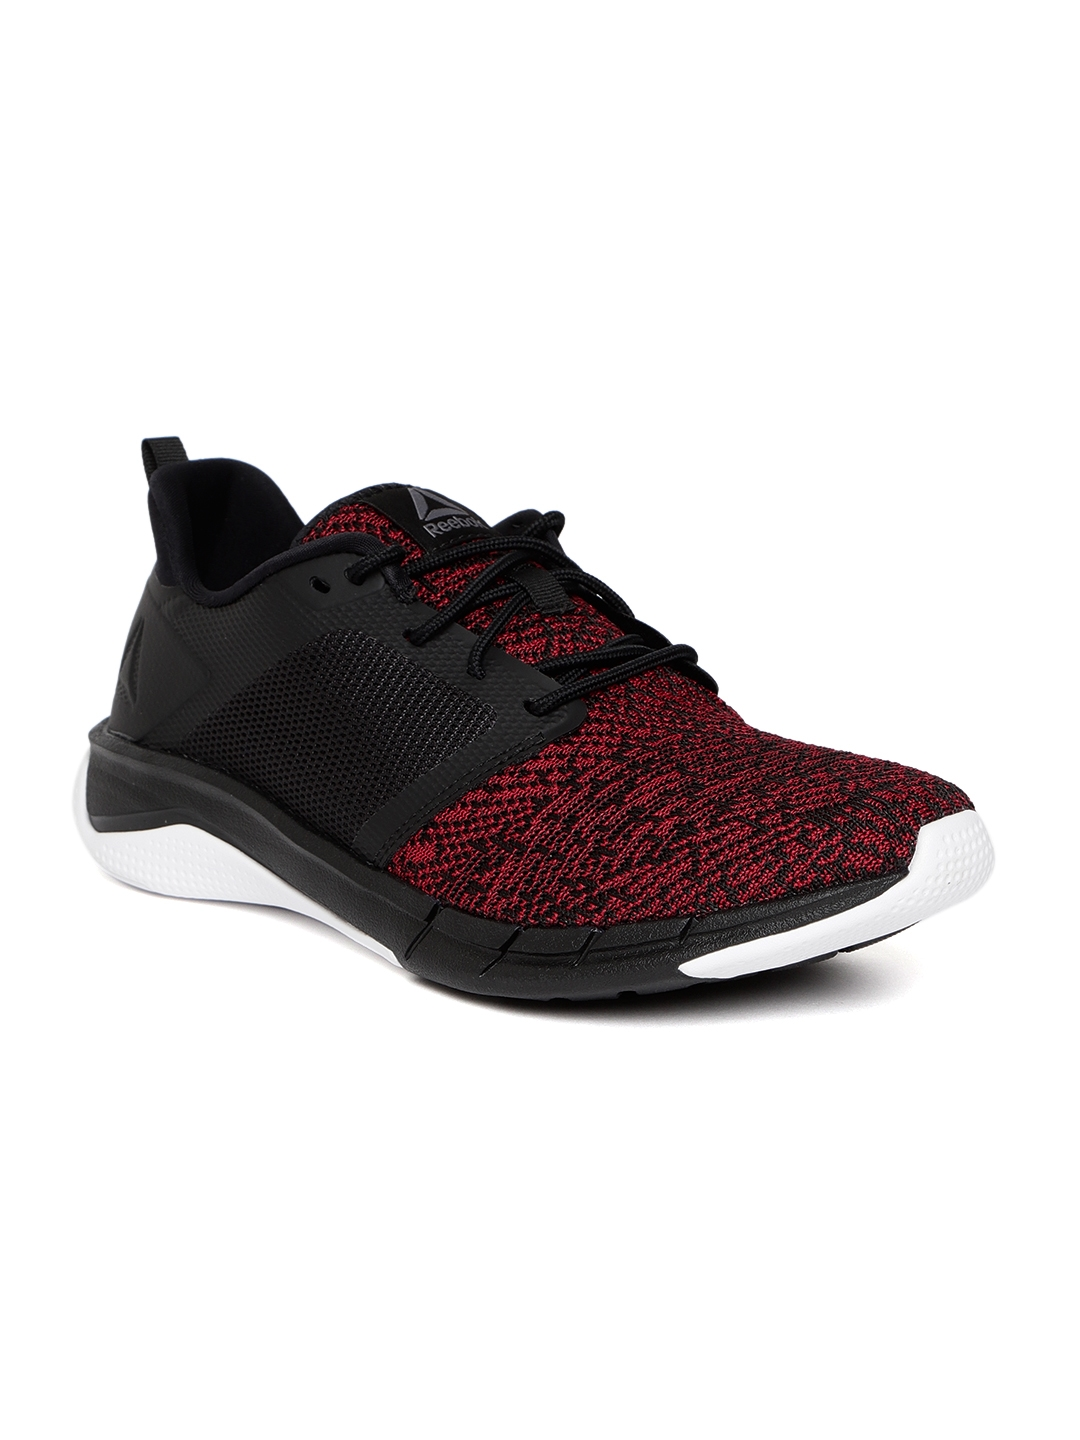 new product 4f664 ebe10 Reebok Men Red   Black Print 3.0 Running Shoes